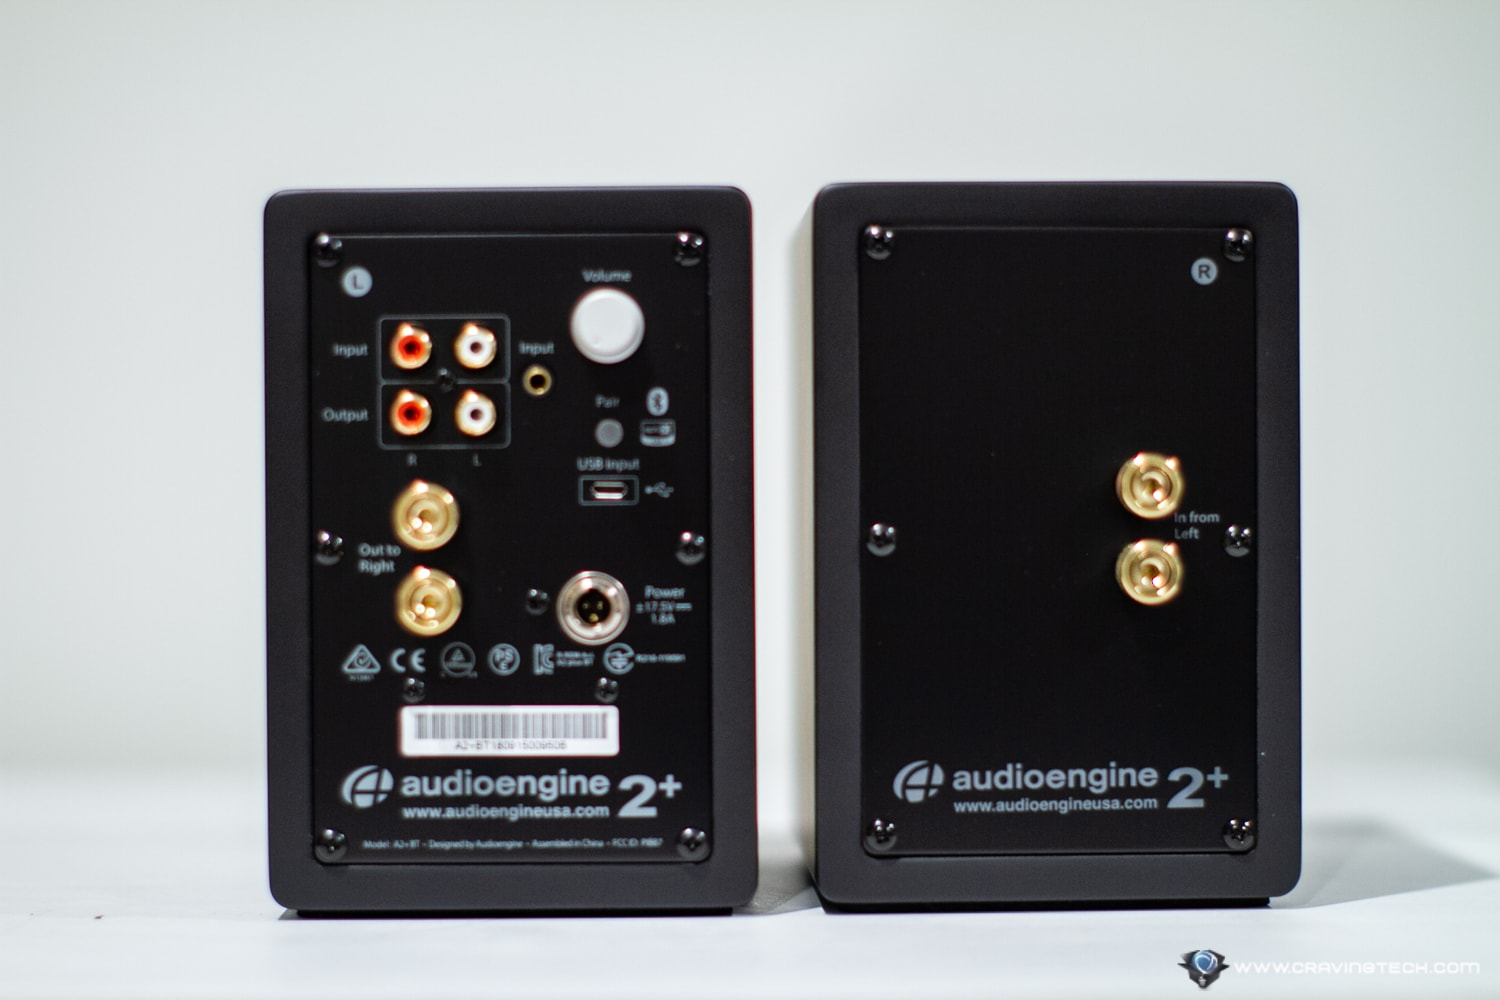 AudioEngine A2+ Wireless Speakers Review